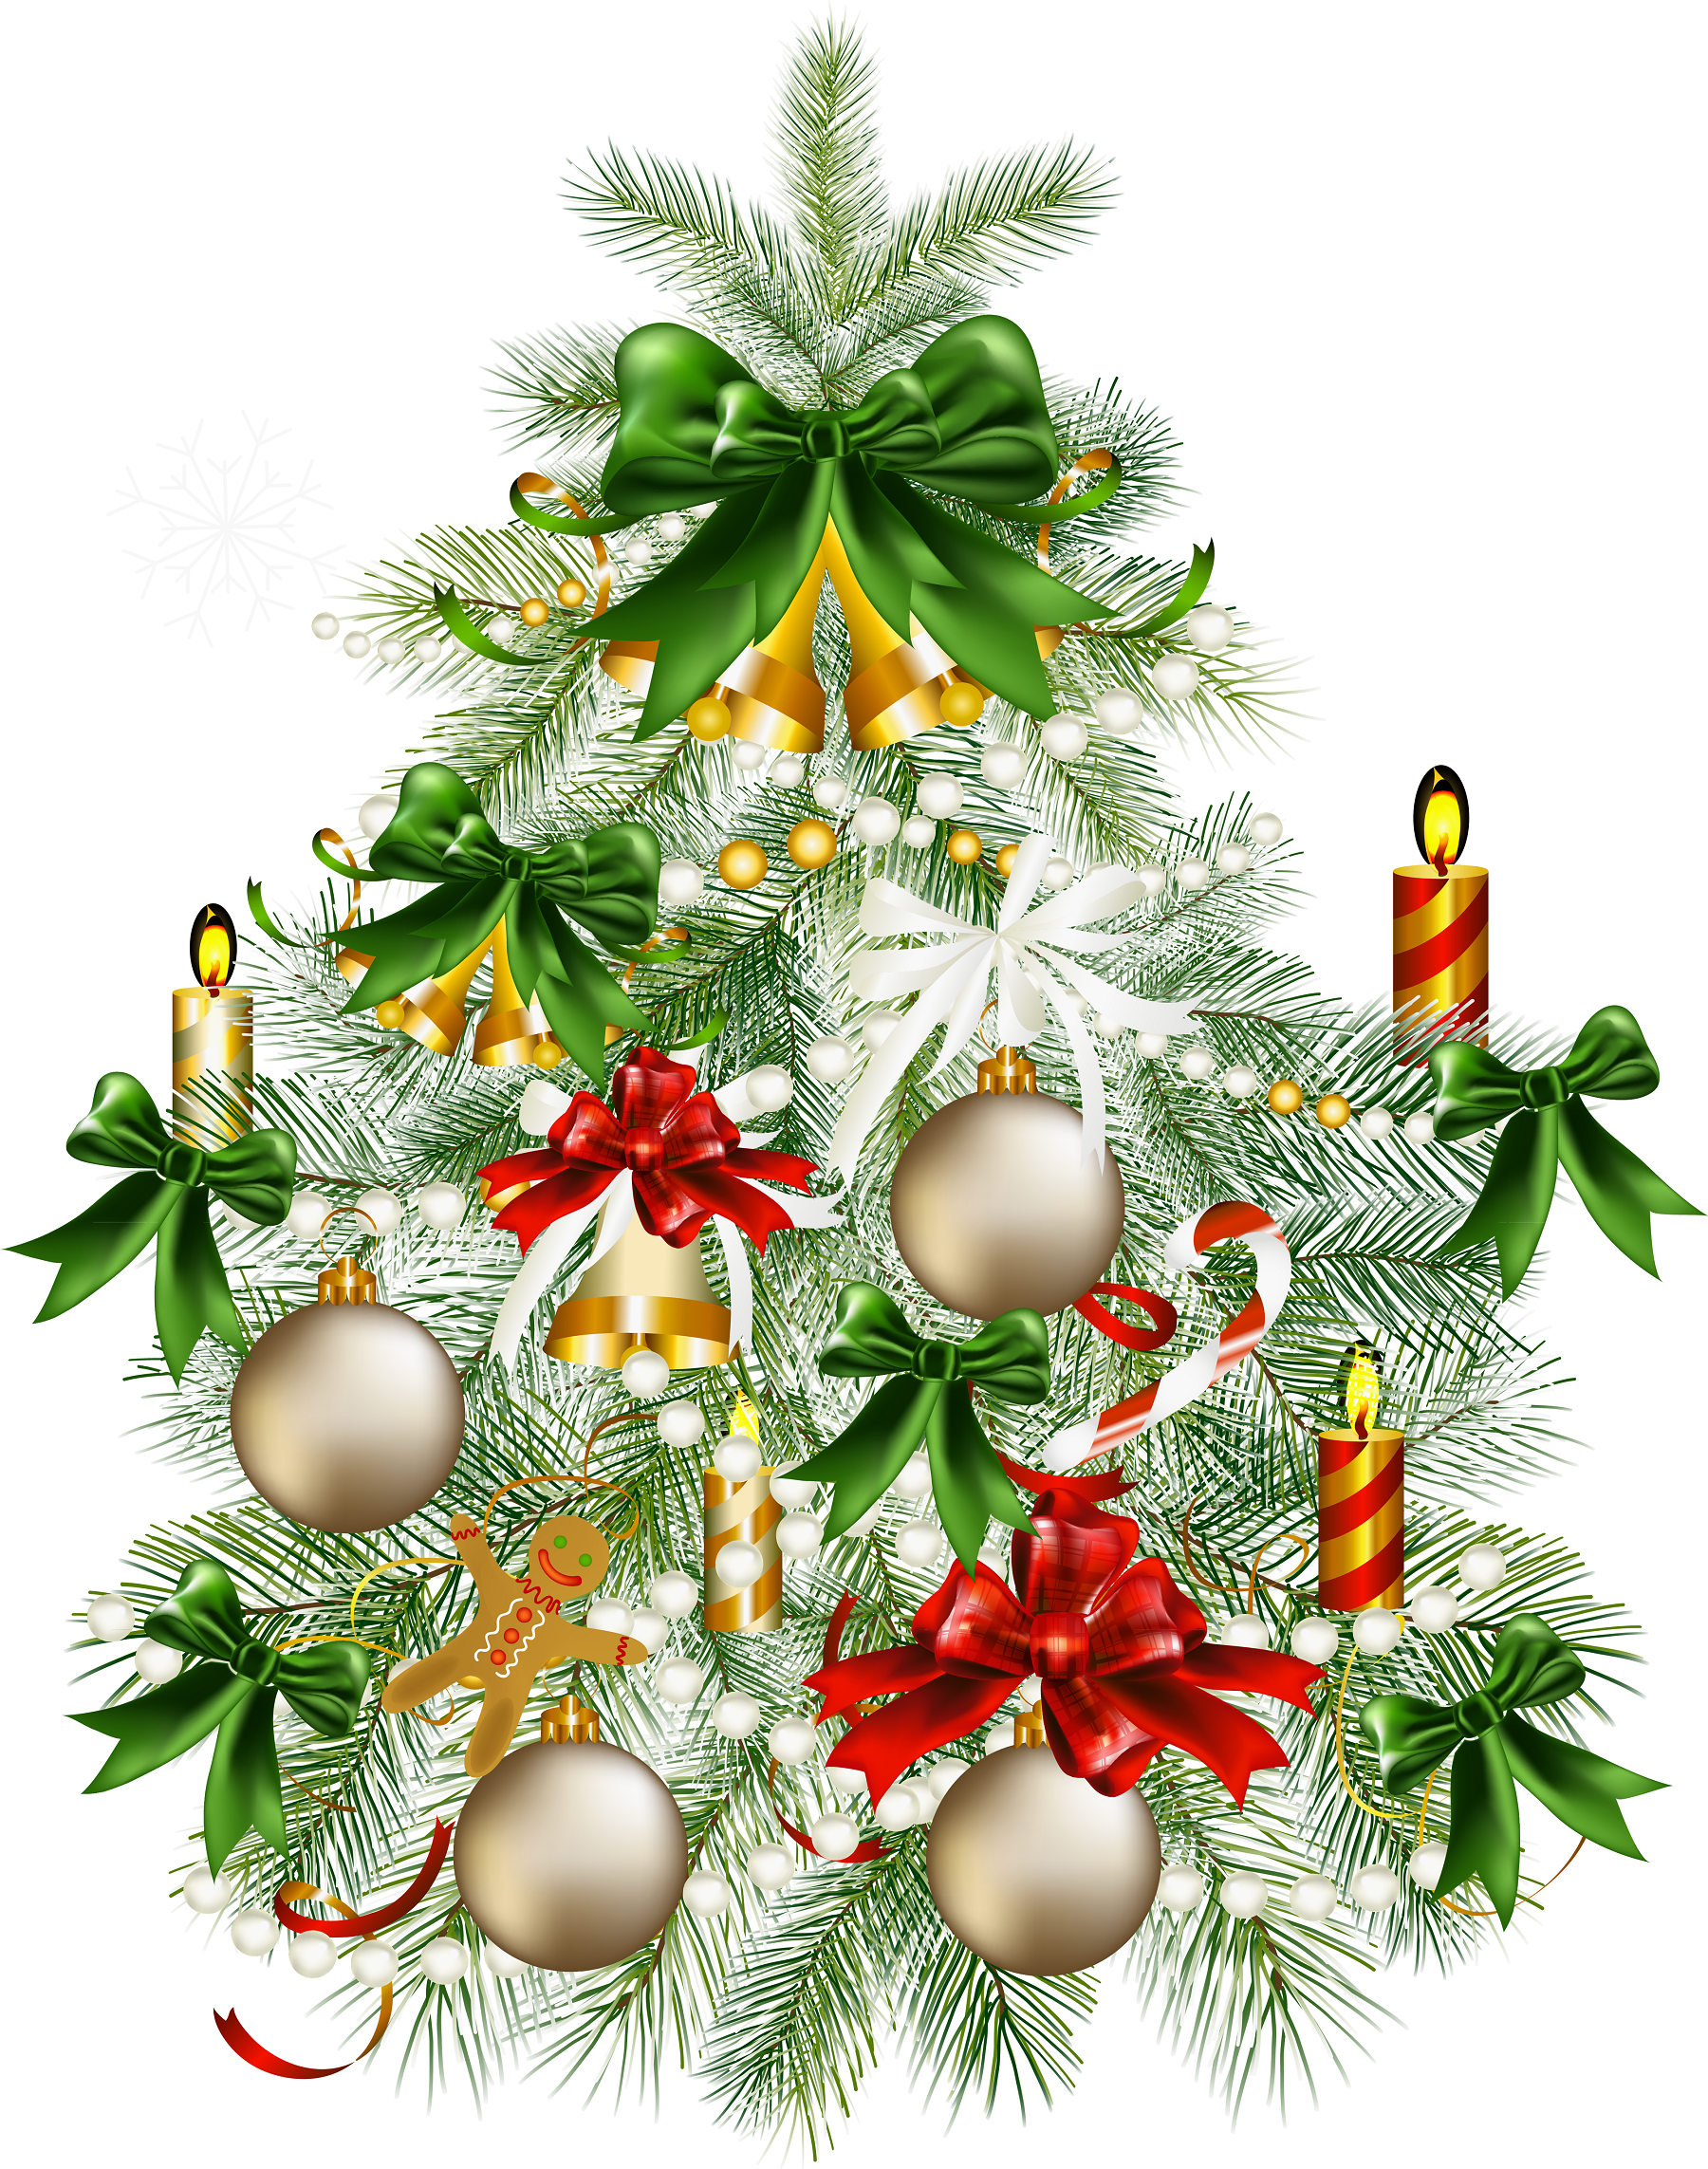 Transparent Snowy Christmas Tree With